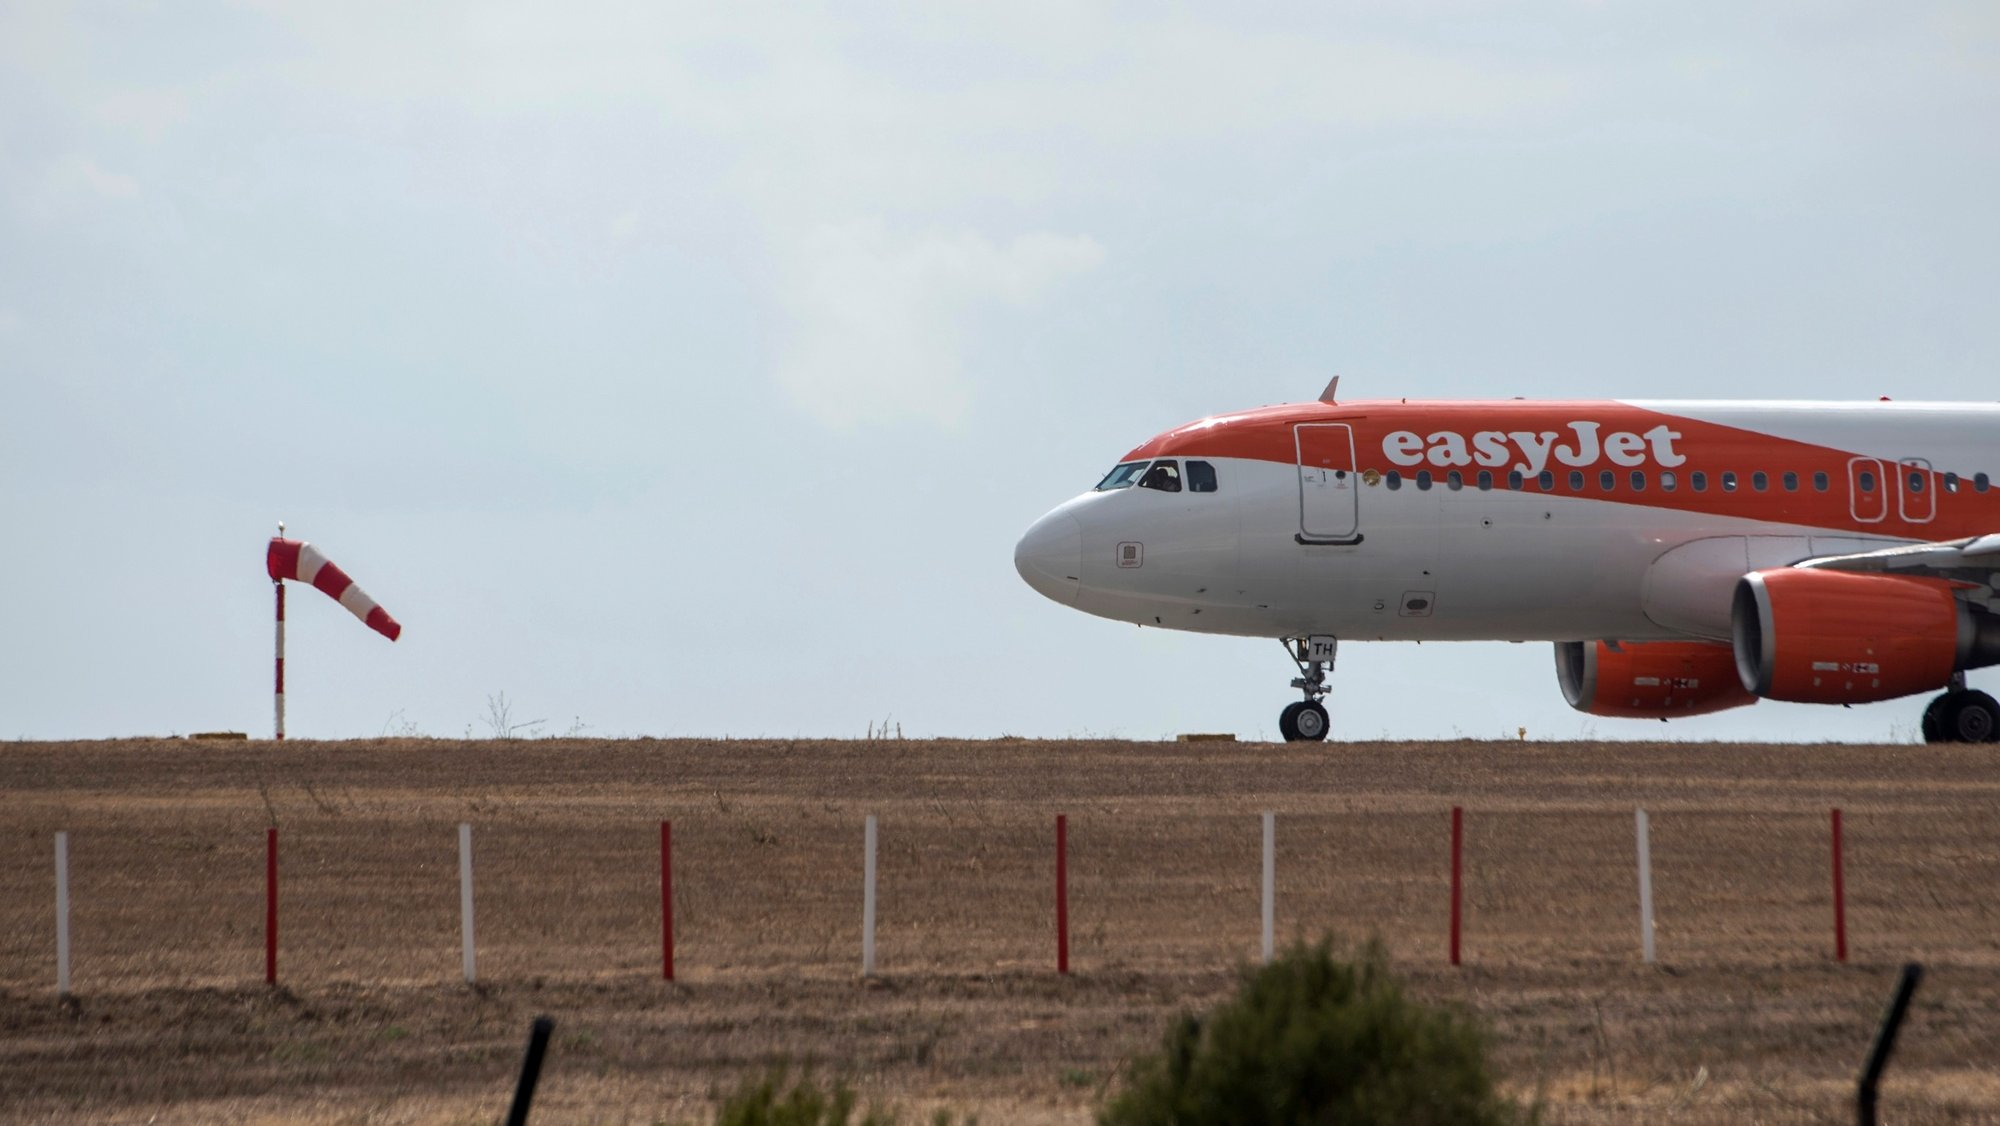 epa09382216 An EasyJet airplane lands in Menorca's airport, Balearic islands, Spain, 31 July 2021. The Balearic islands are recording a high increase in air traffic with lots of national and international flights due to the first weekend of August.  EPA/David Arquimbau Sintes